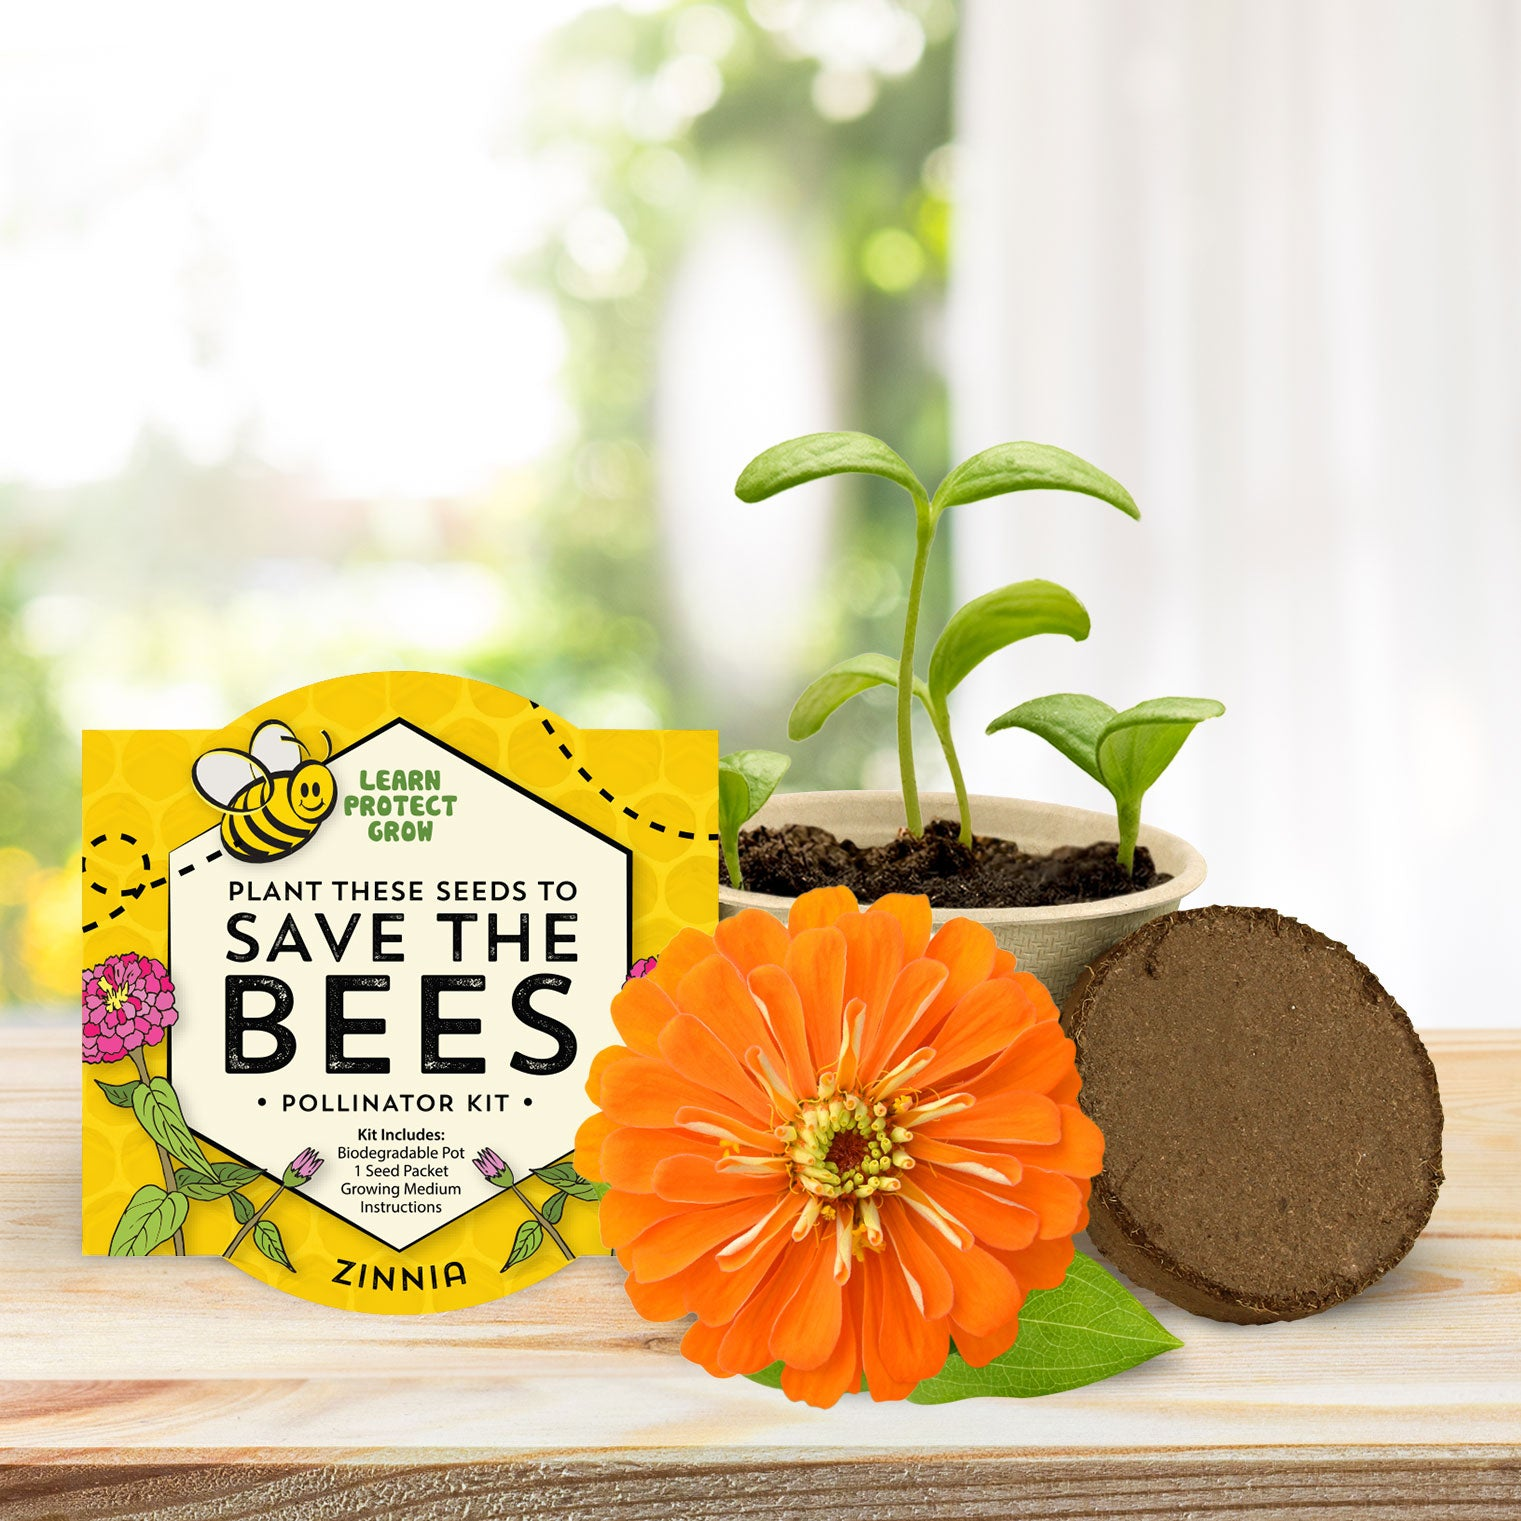 Save the Bees - Biodegradable Grow Kit